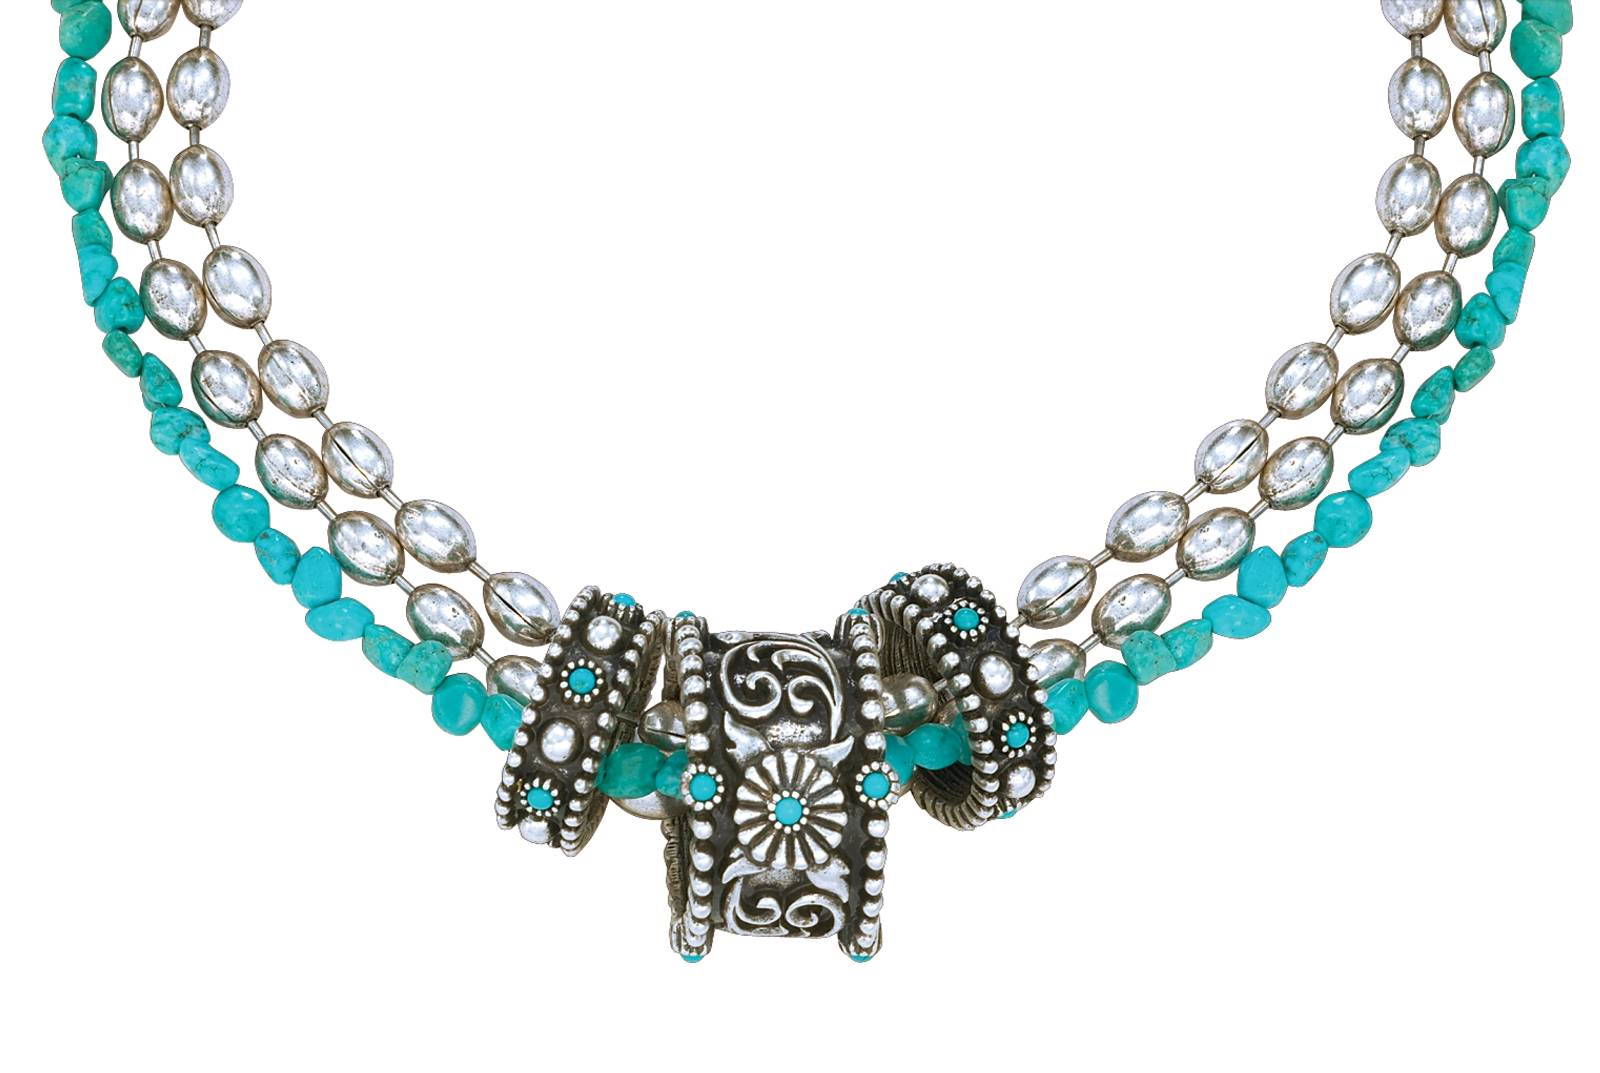 Montana Silversmiths Turquoise Passion Flower Rings Torsade Necklace